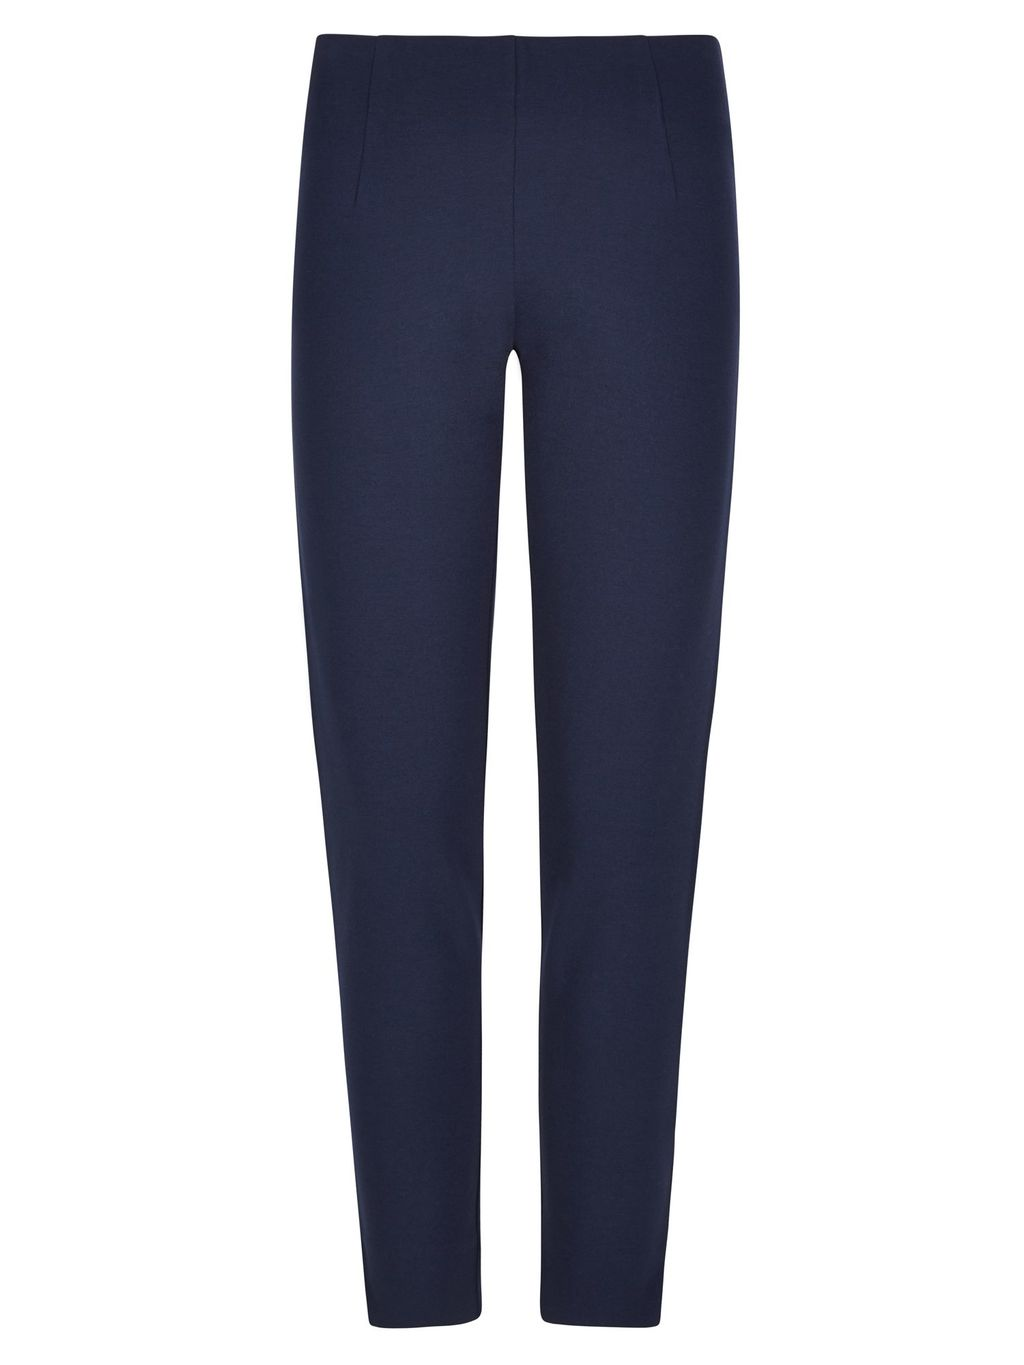 Miracle Capri Trouser, Navy - pattern: plain; style: capri; waist: mid/regular rise; predominant colour: navy; occasions: casual, creative work; length: ankle length; fibres: cotton - 100%; texture group: cotton feel fabrics; fit: slim leg; pattern type: fabric; season: s/s 2016; wardrobe: basic